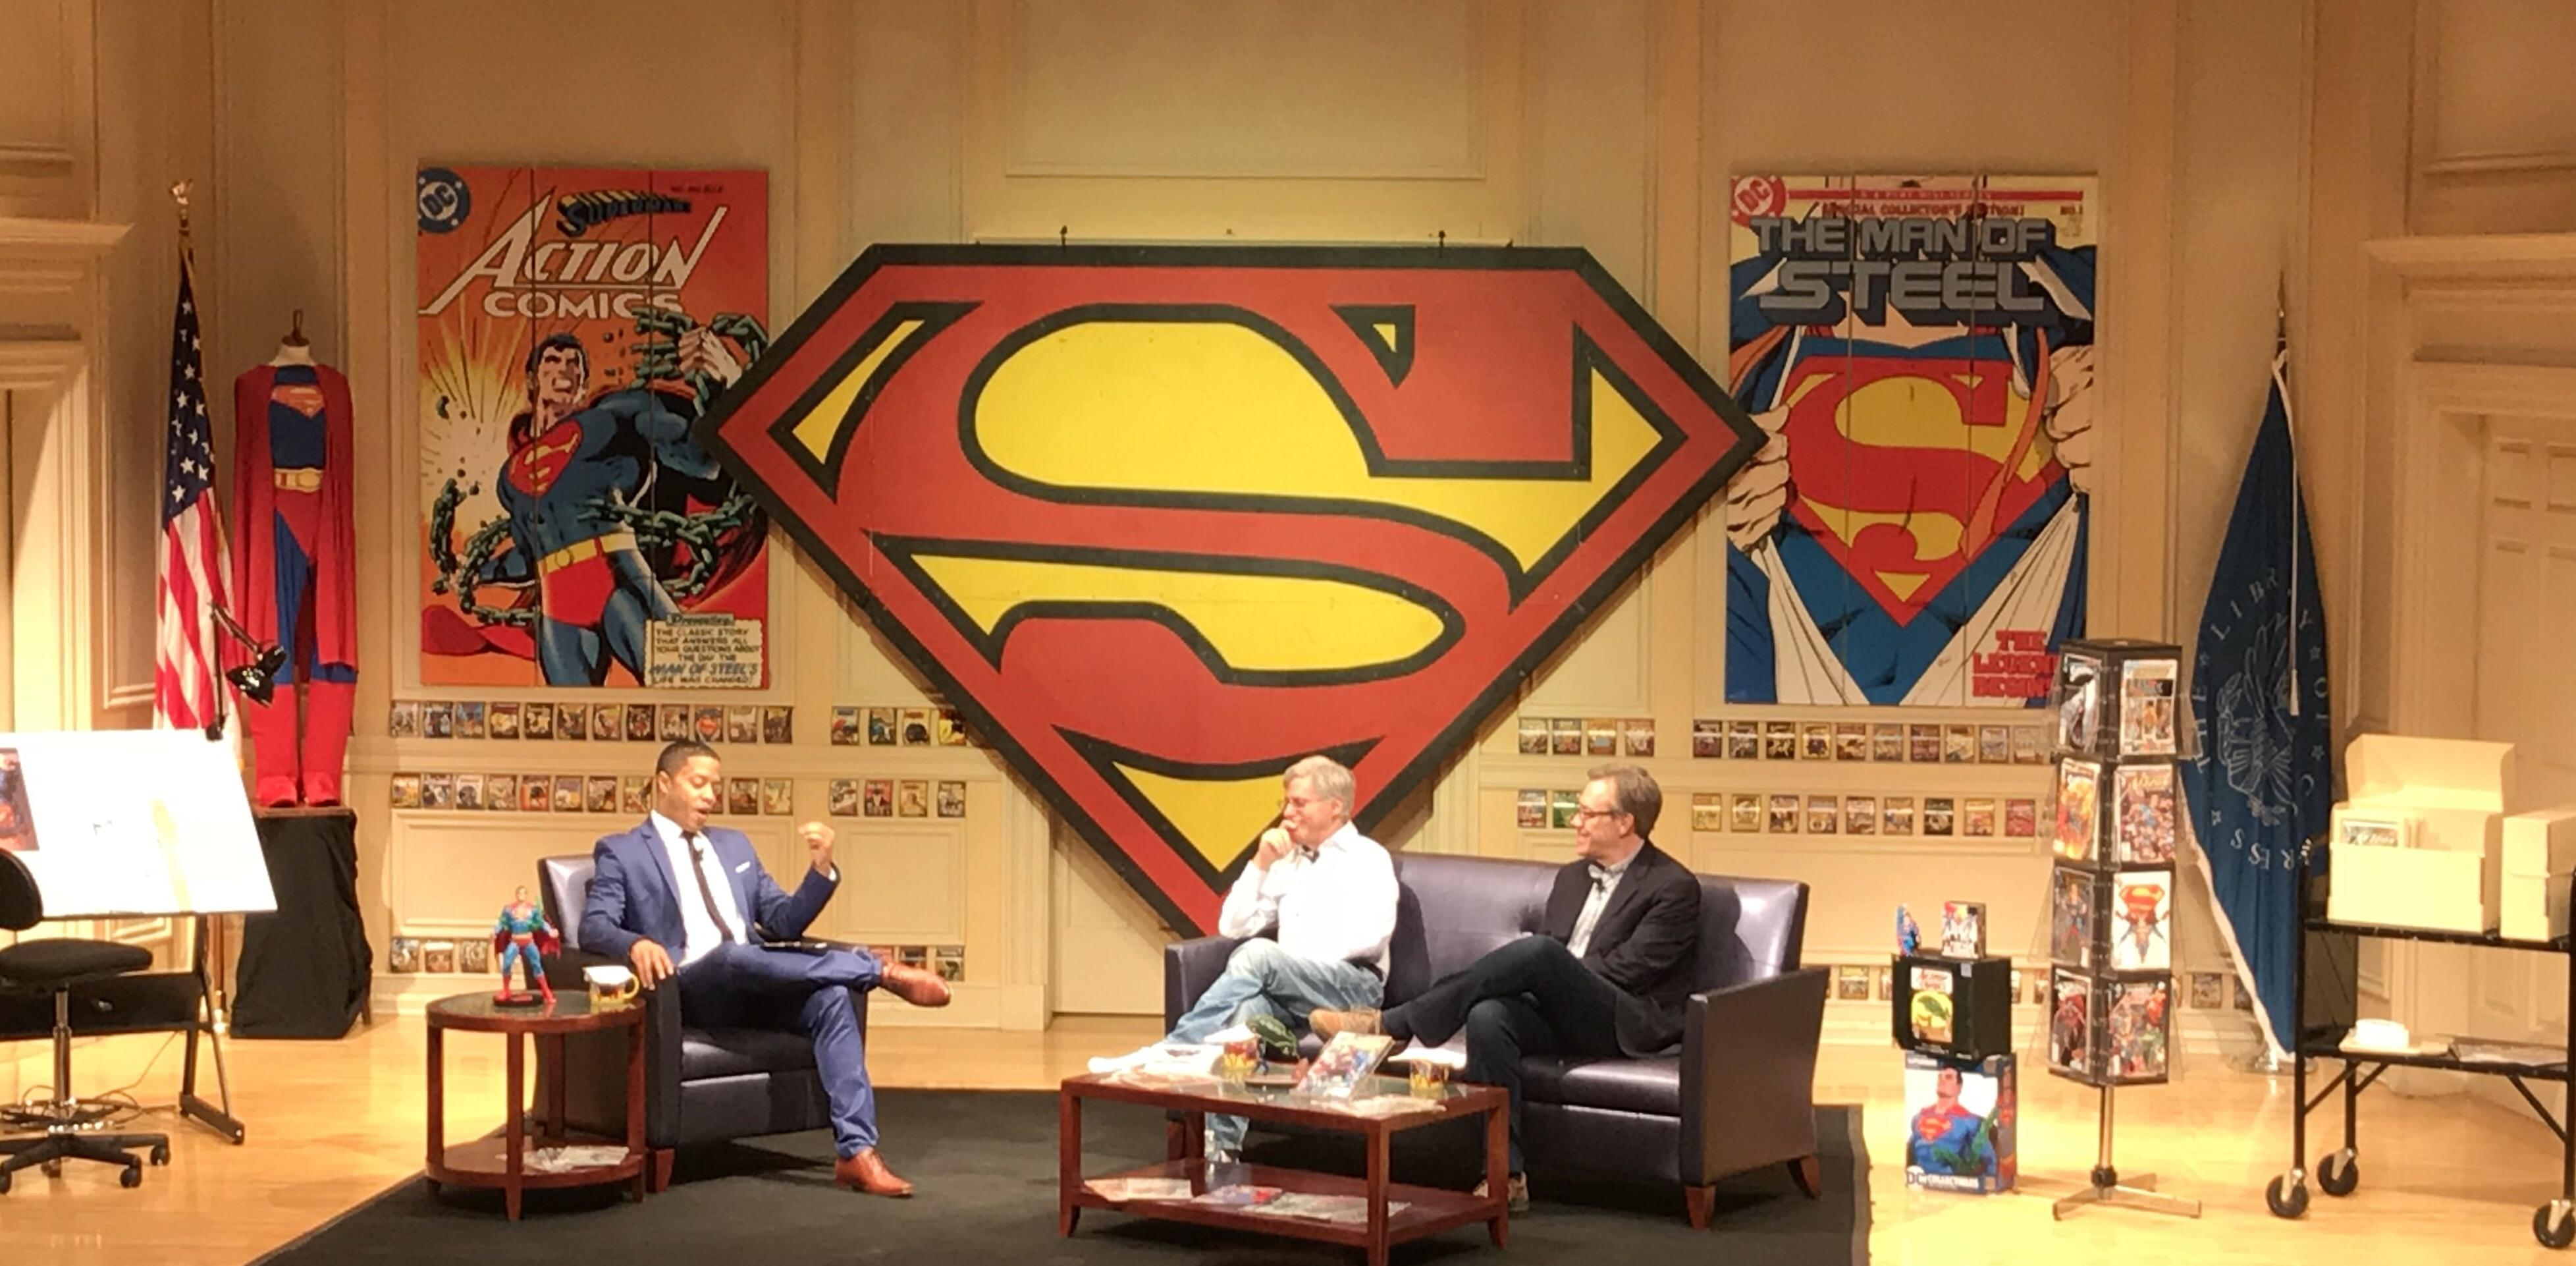 library-of-congress-celebration-of-action-comics-and-superman